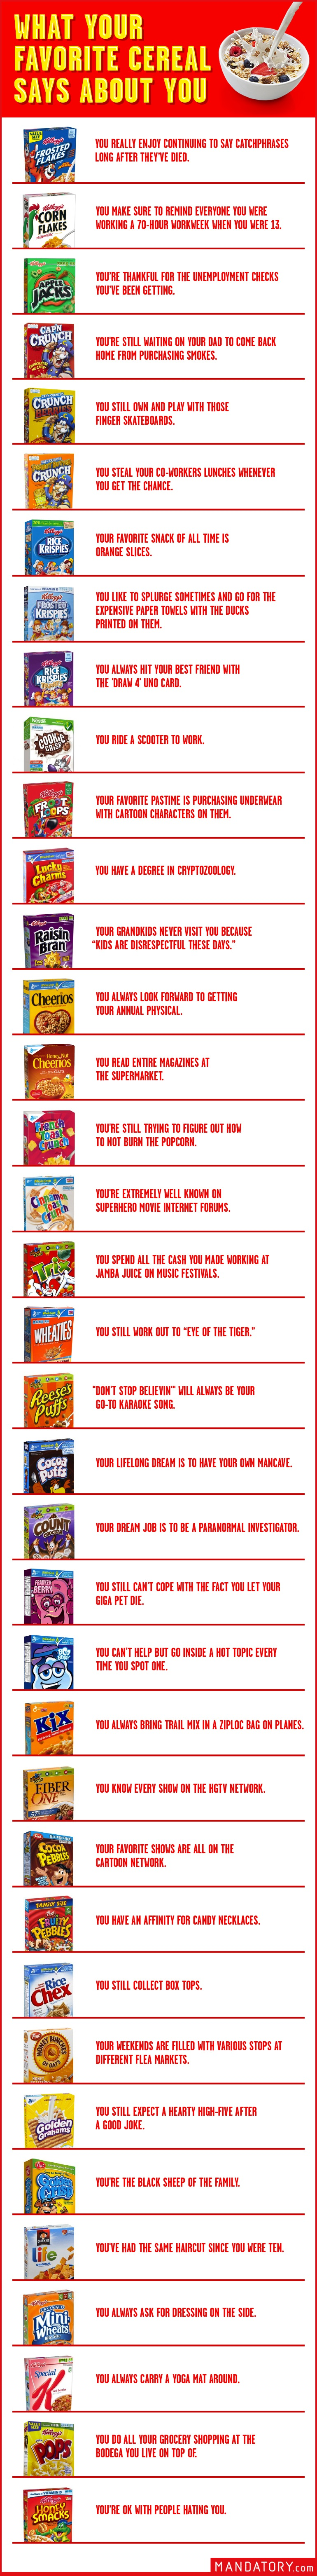 what your favorite cereal says about you, favorite cereal, best cereal